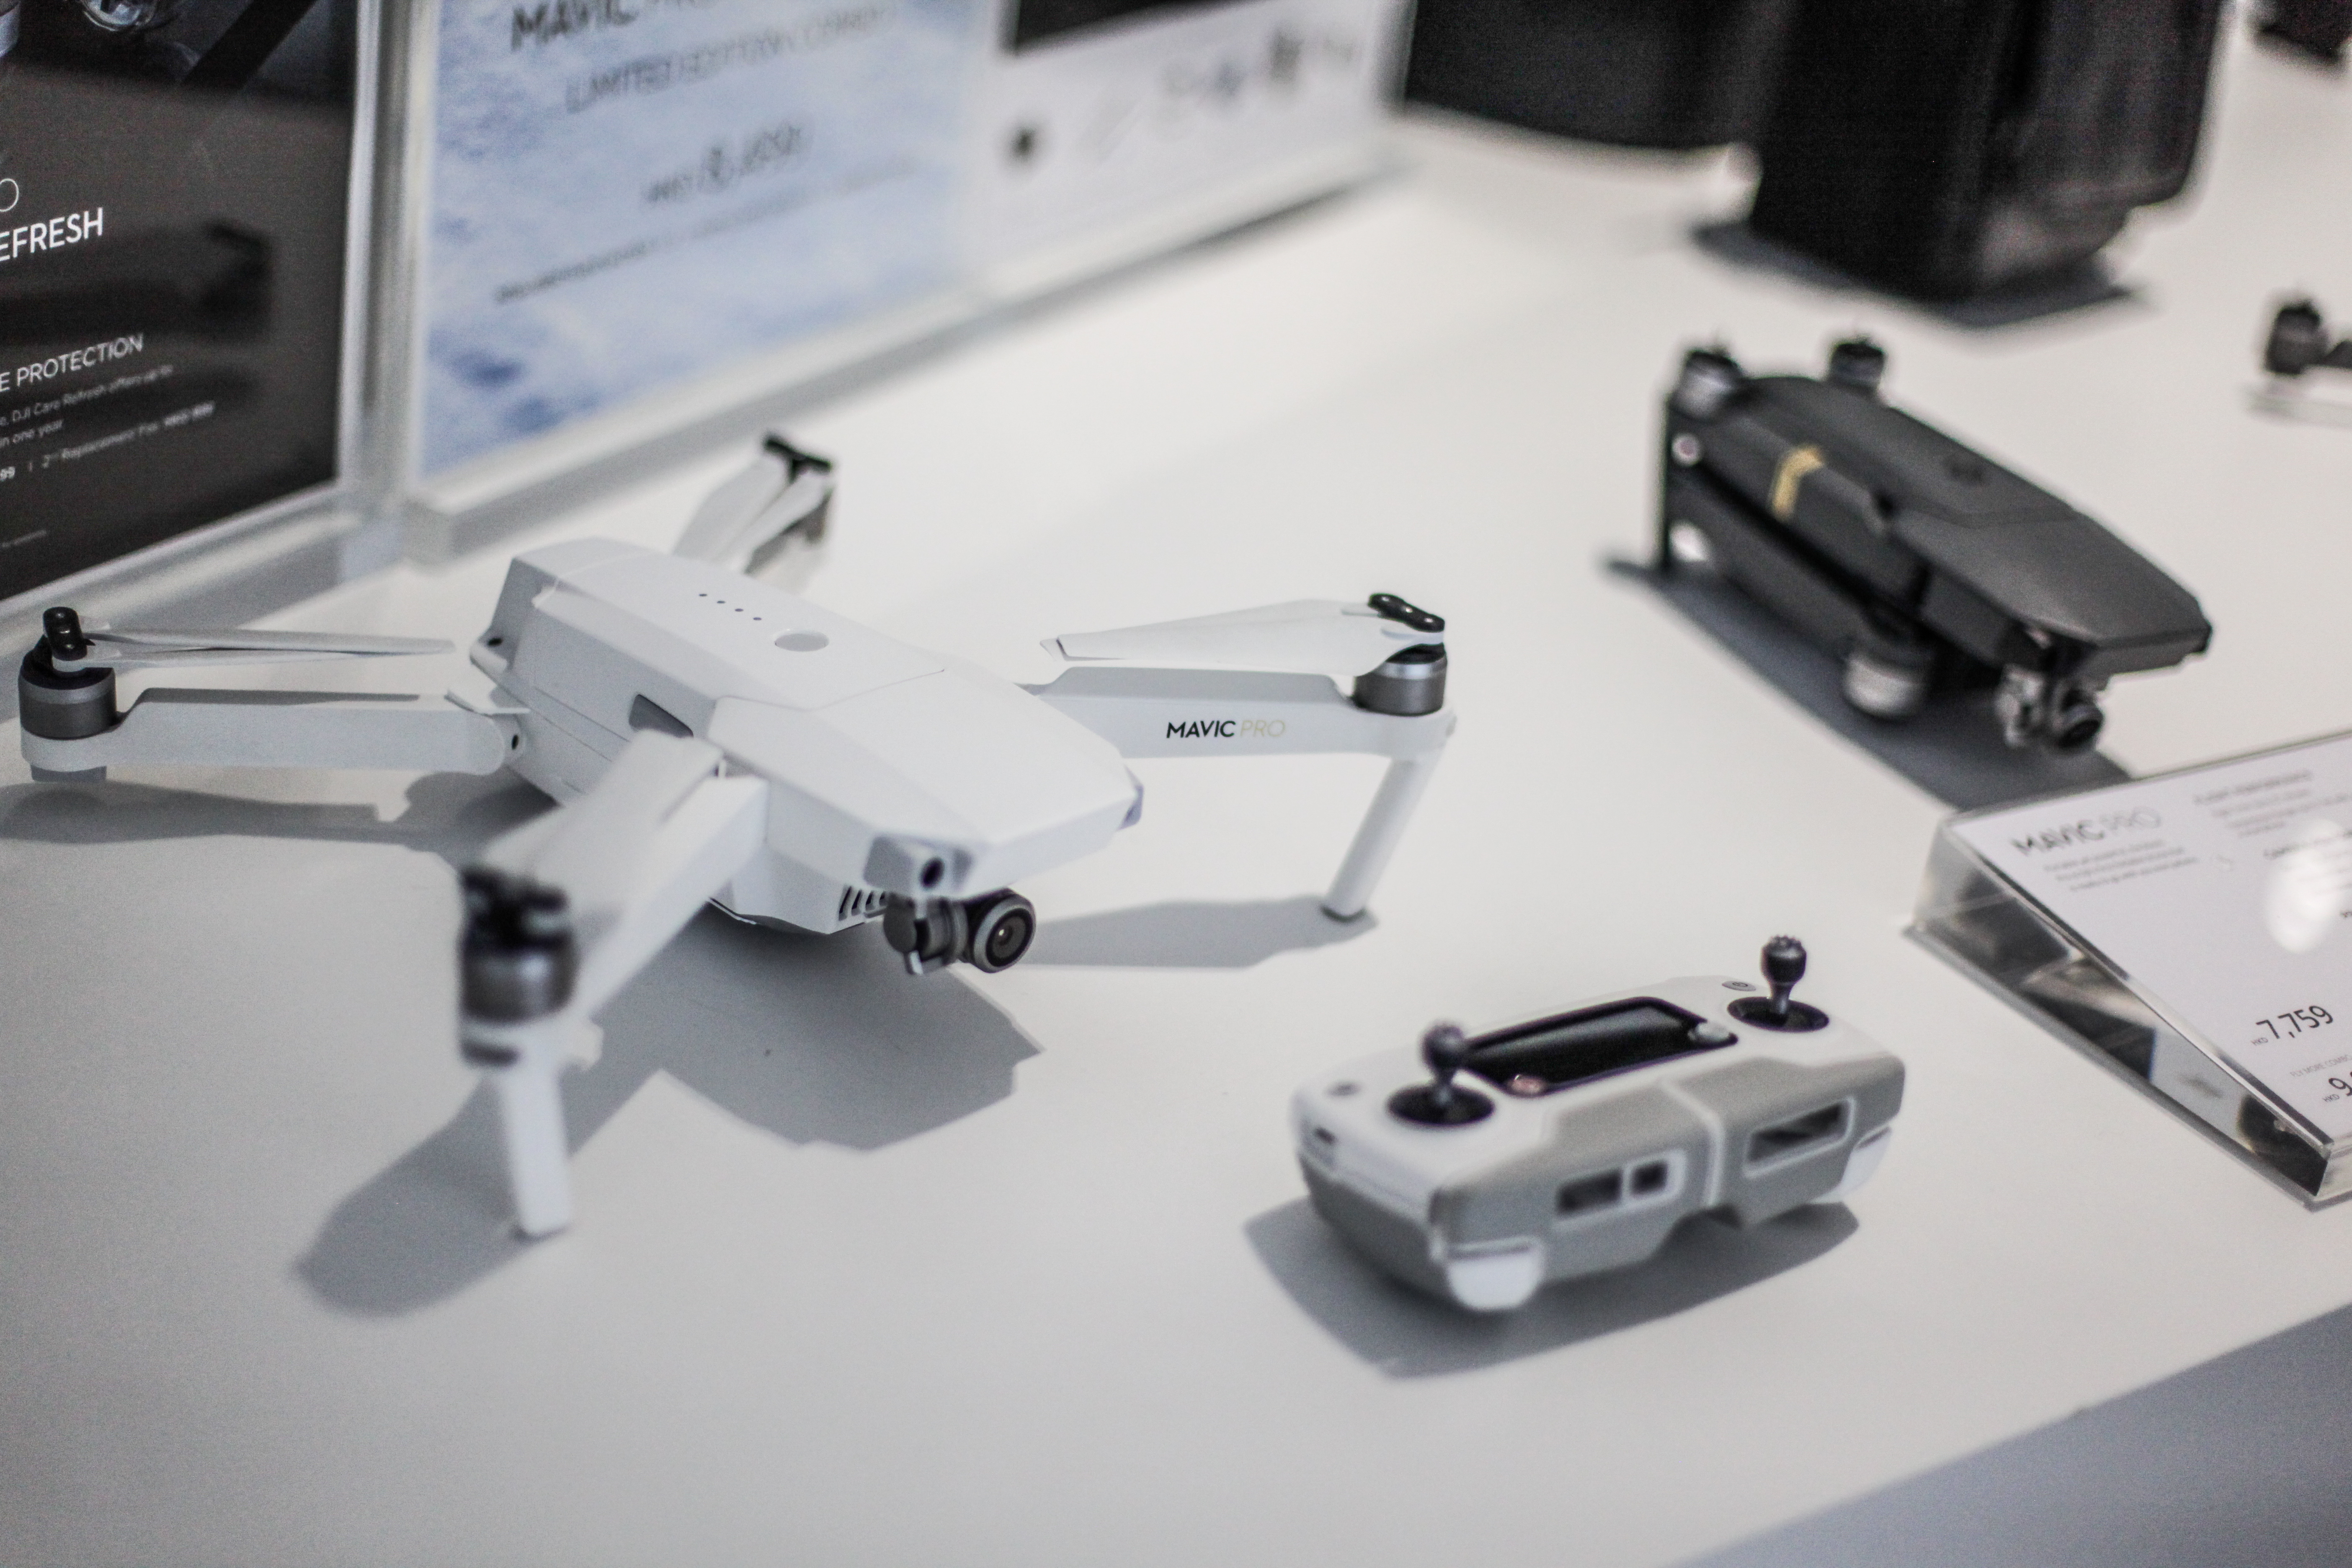 DJI and Microsoft partner to build SDK for Windows 10